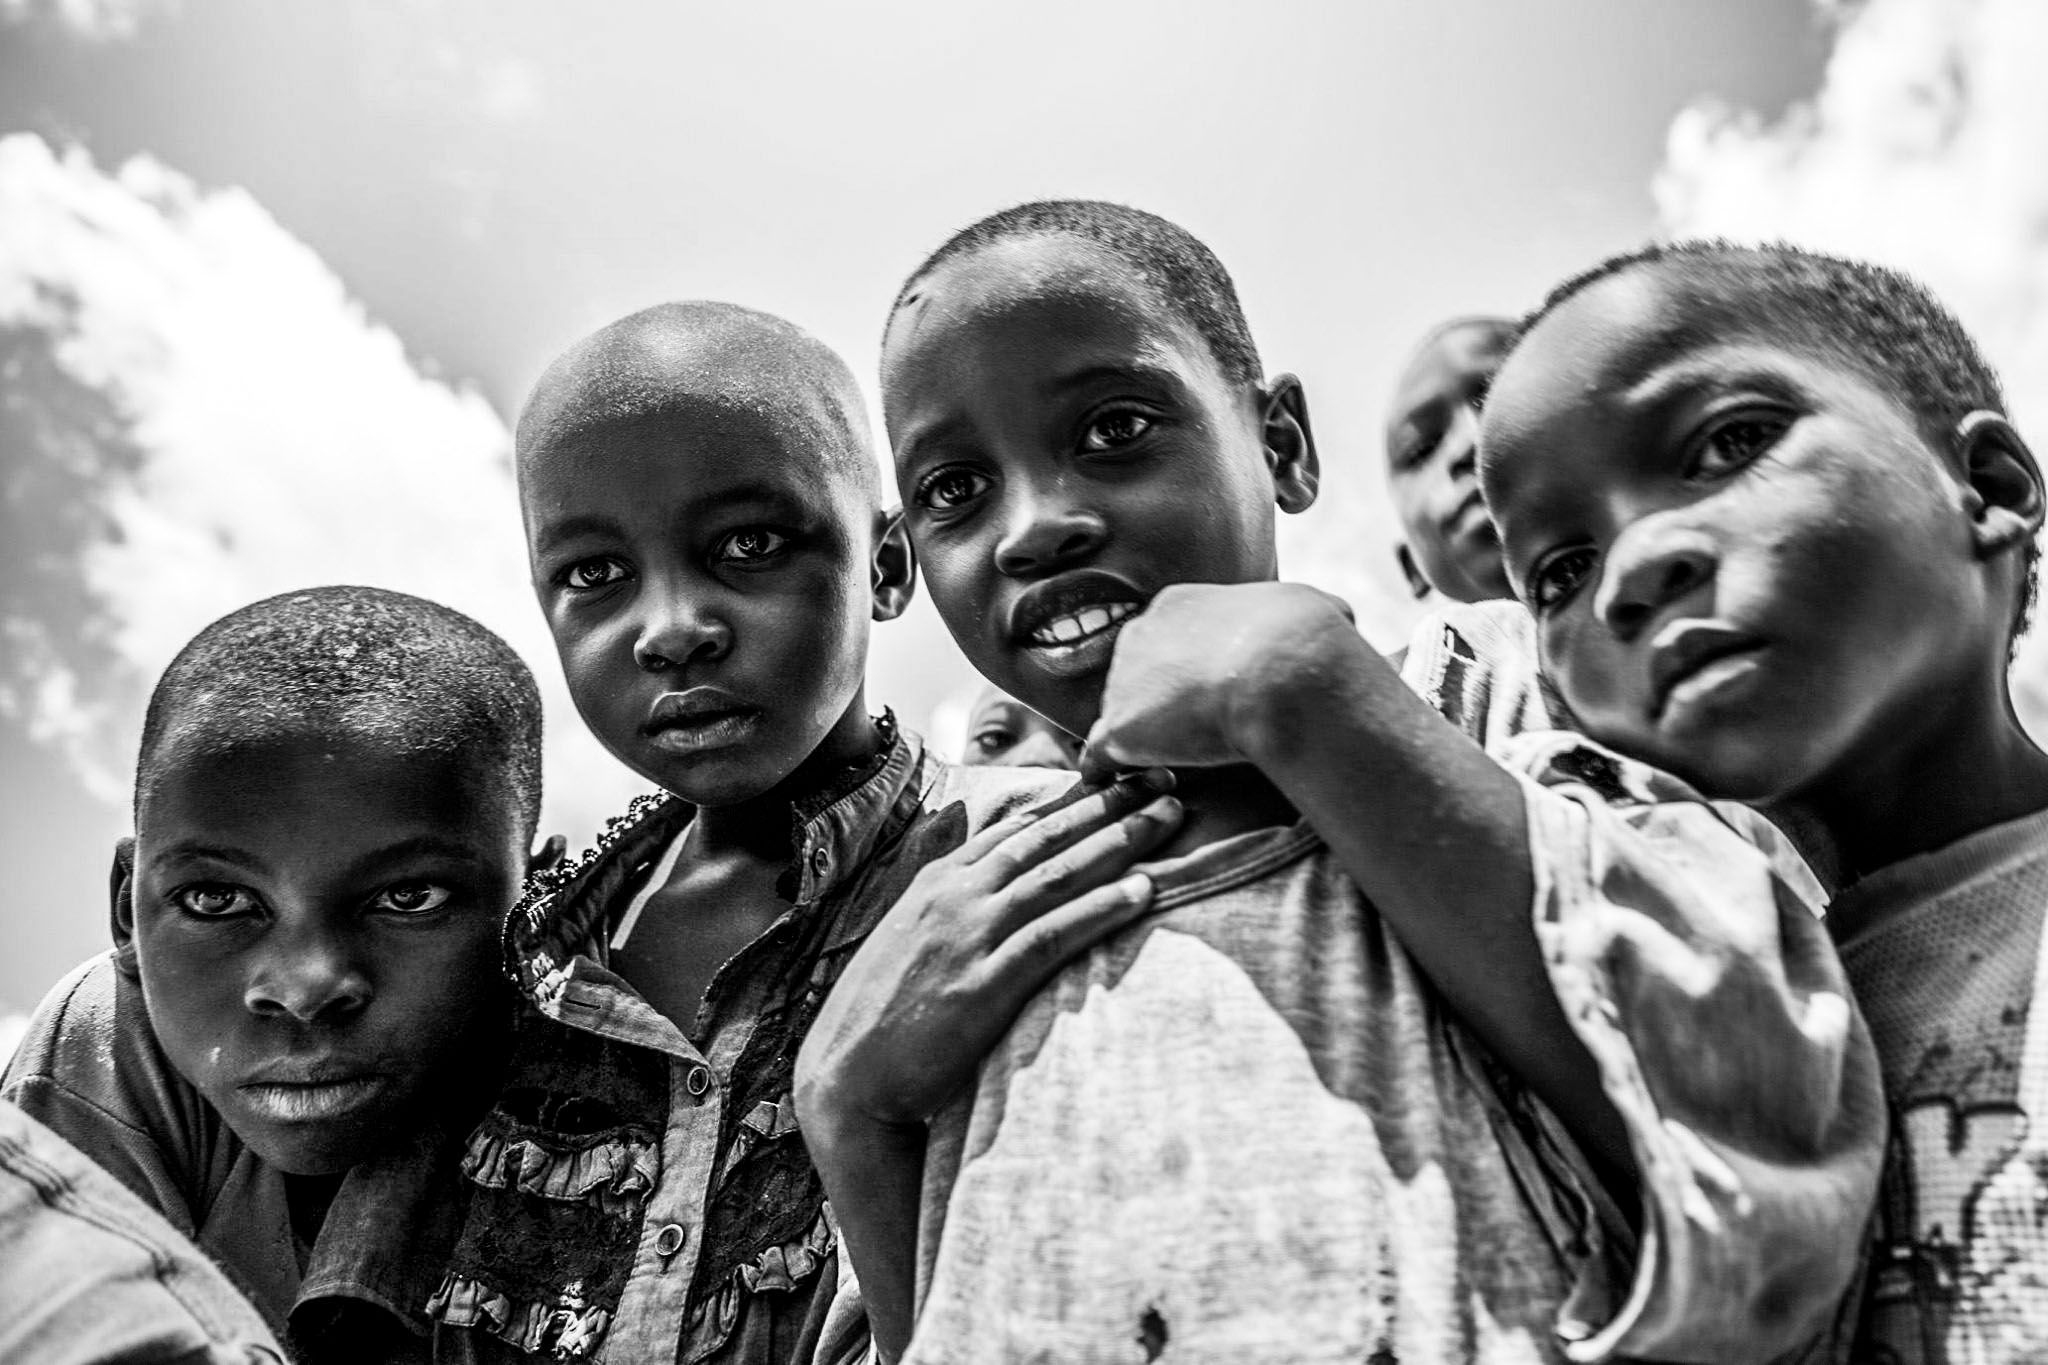 Children looking at a the camera with sky behind them.